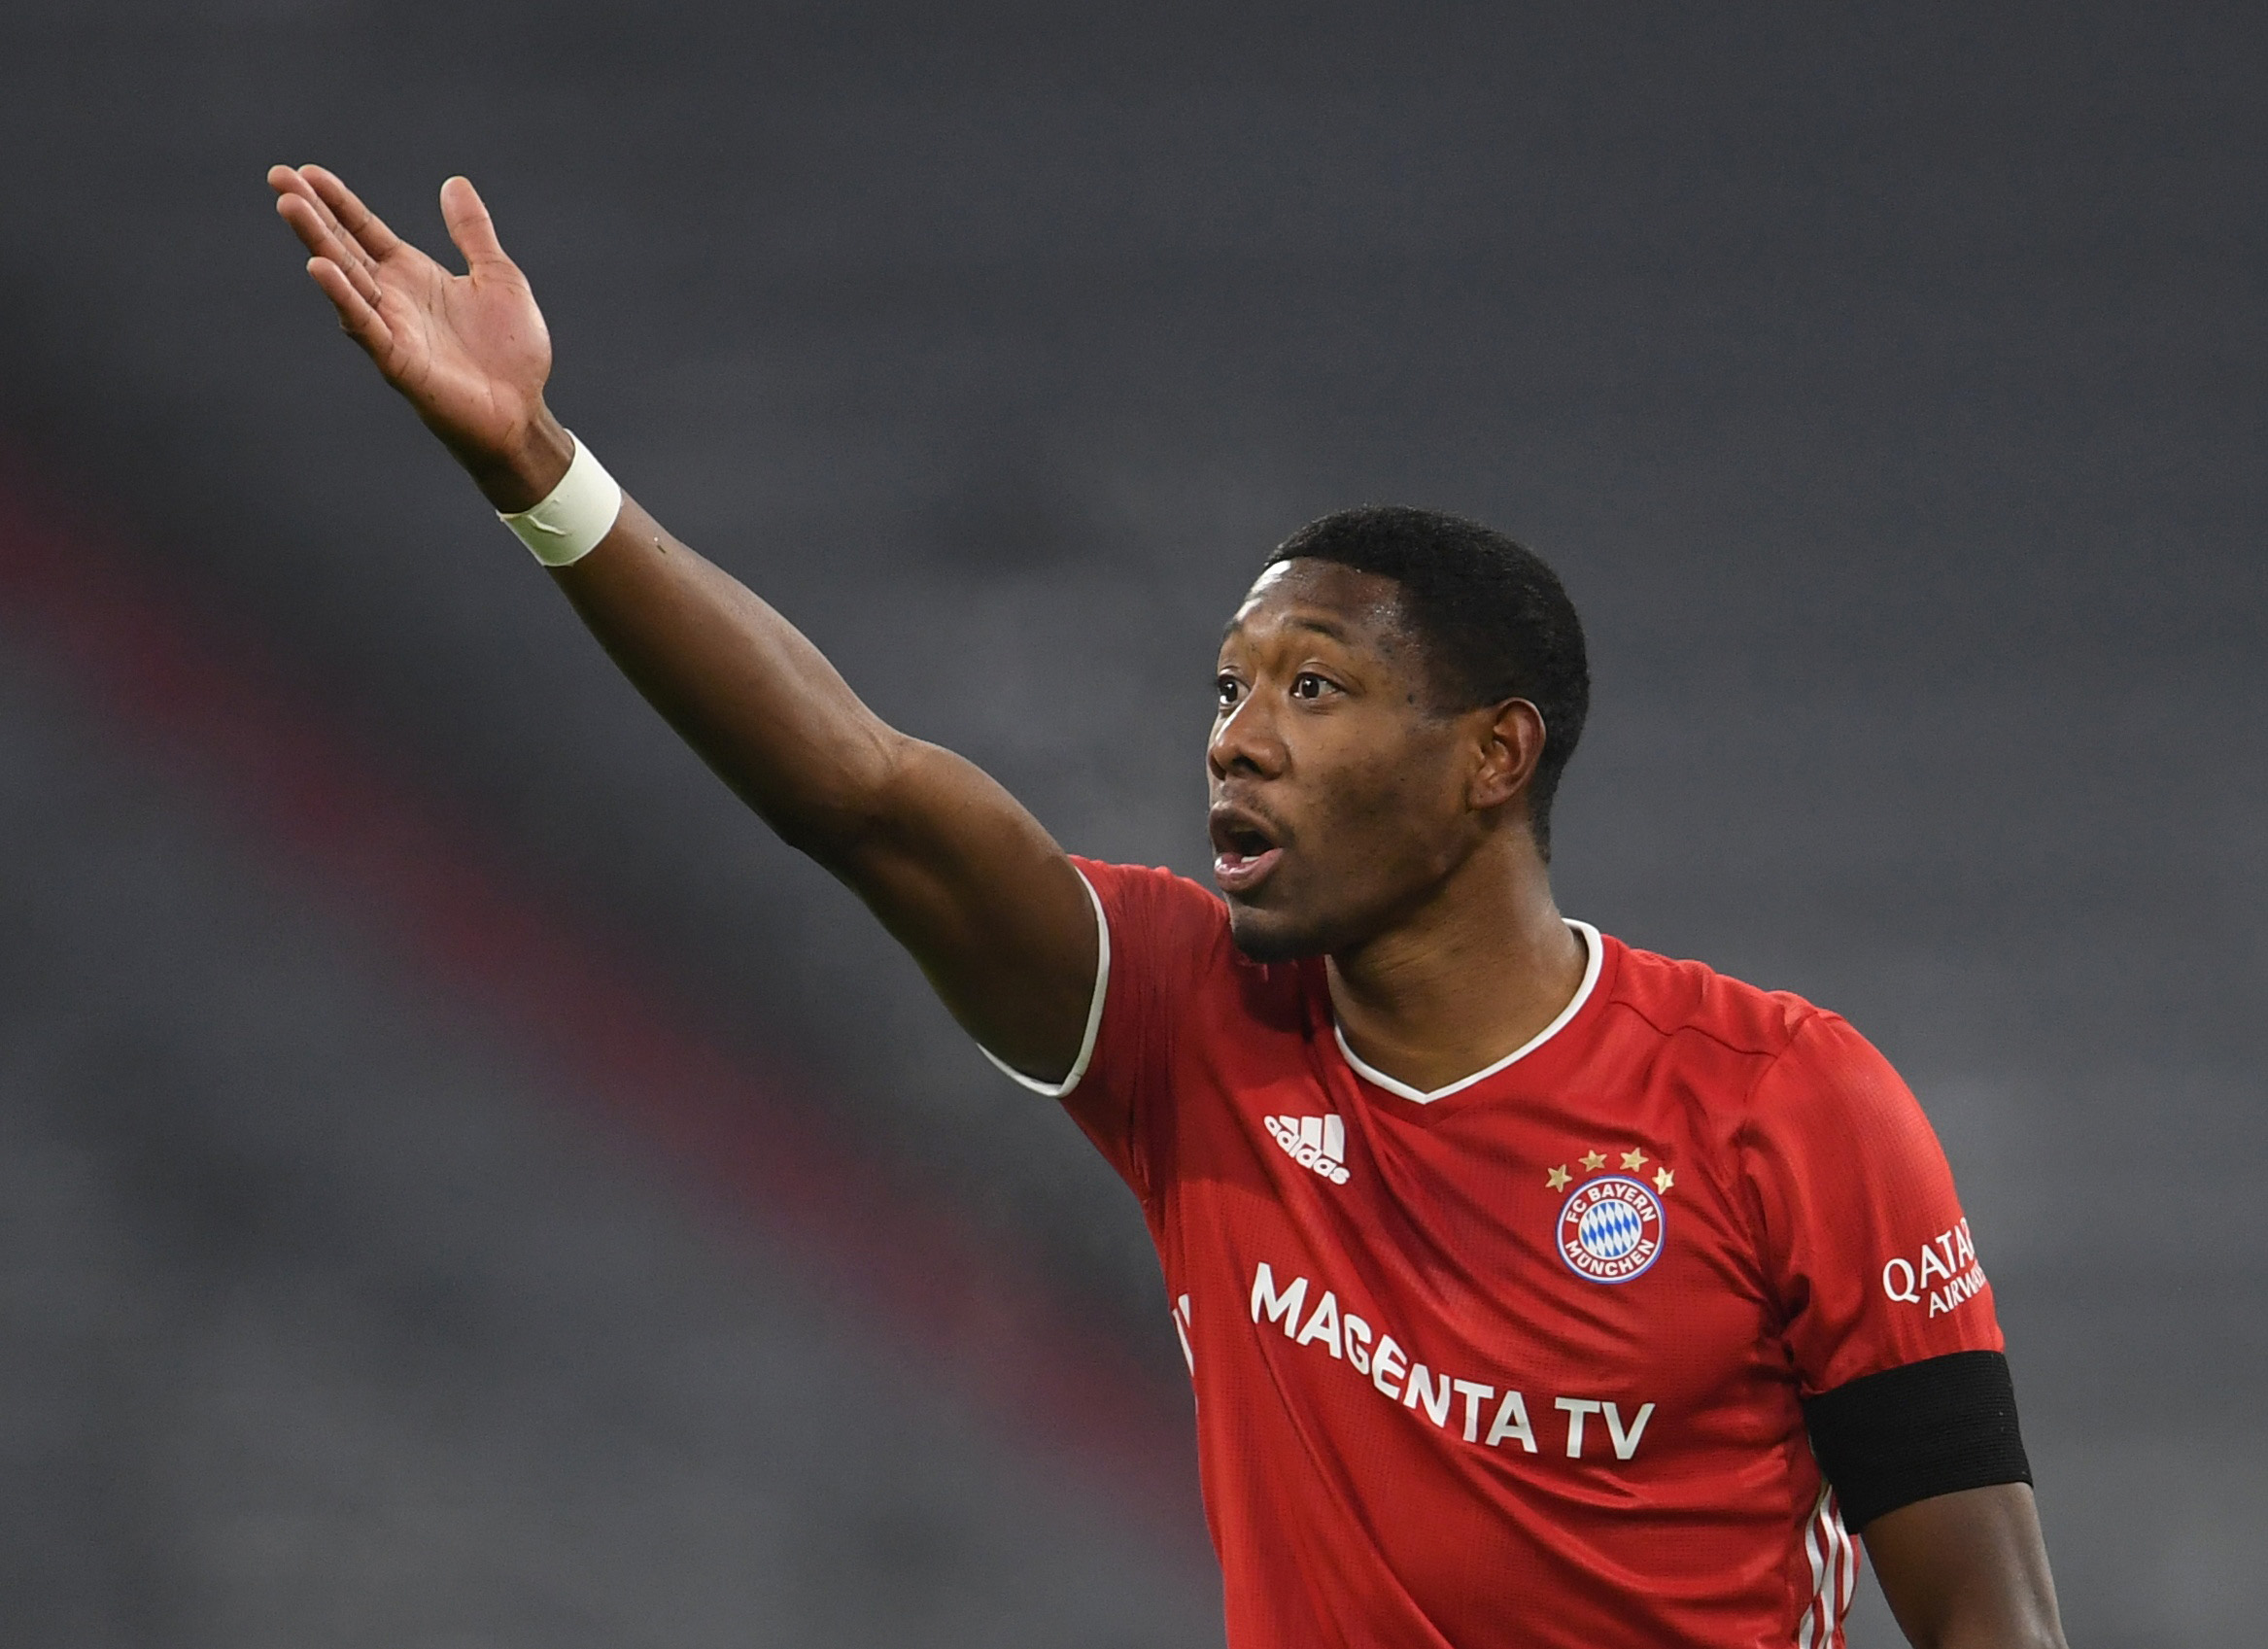 Oliver Kahn explains the negations with Alaba: We rolled out the red carpet for him